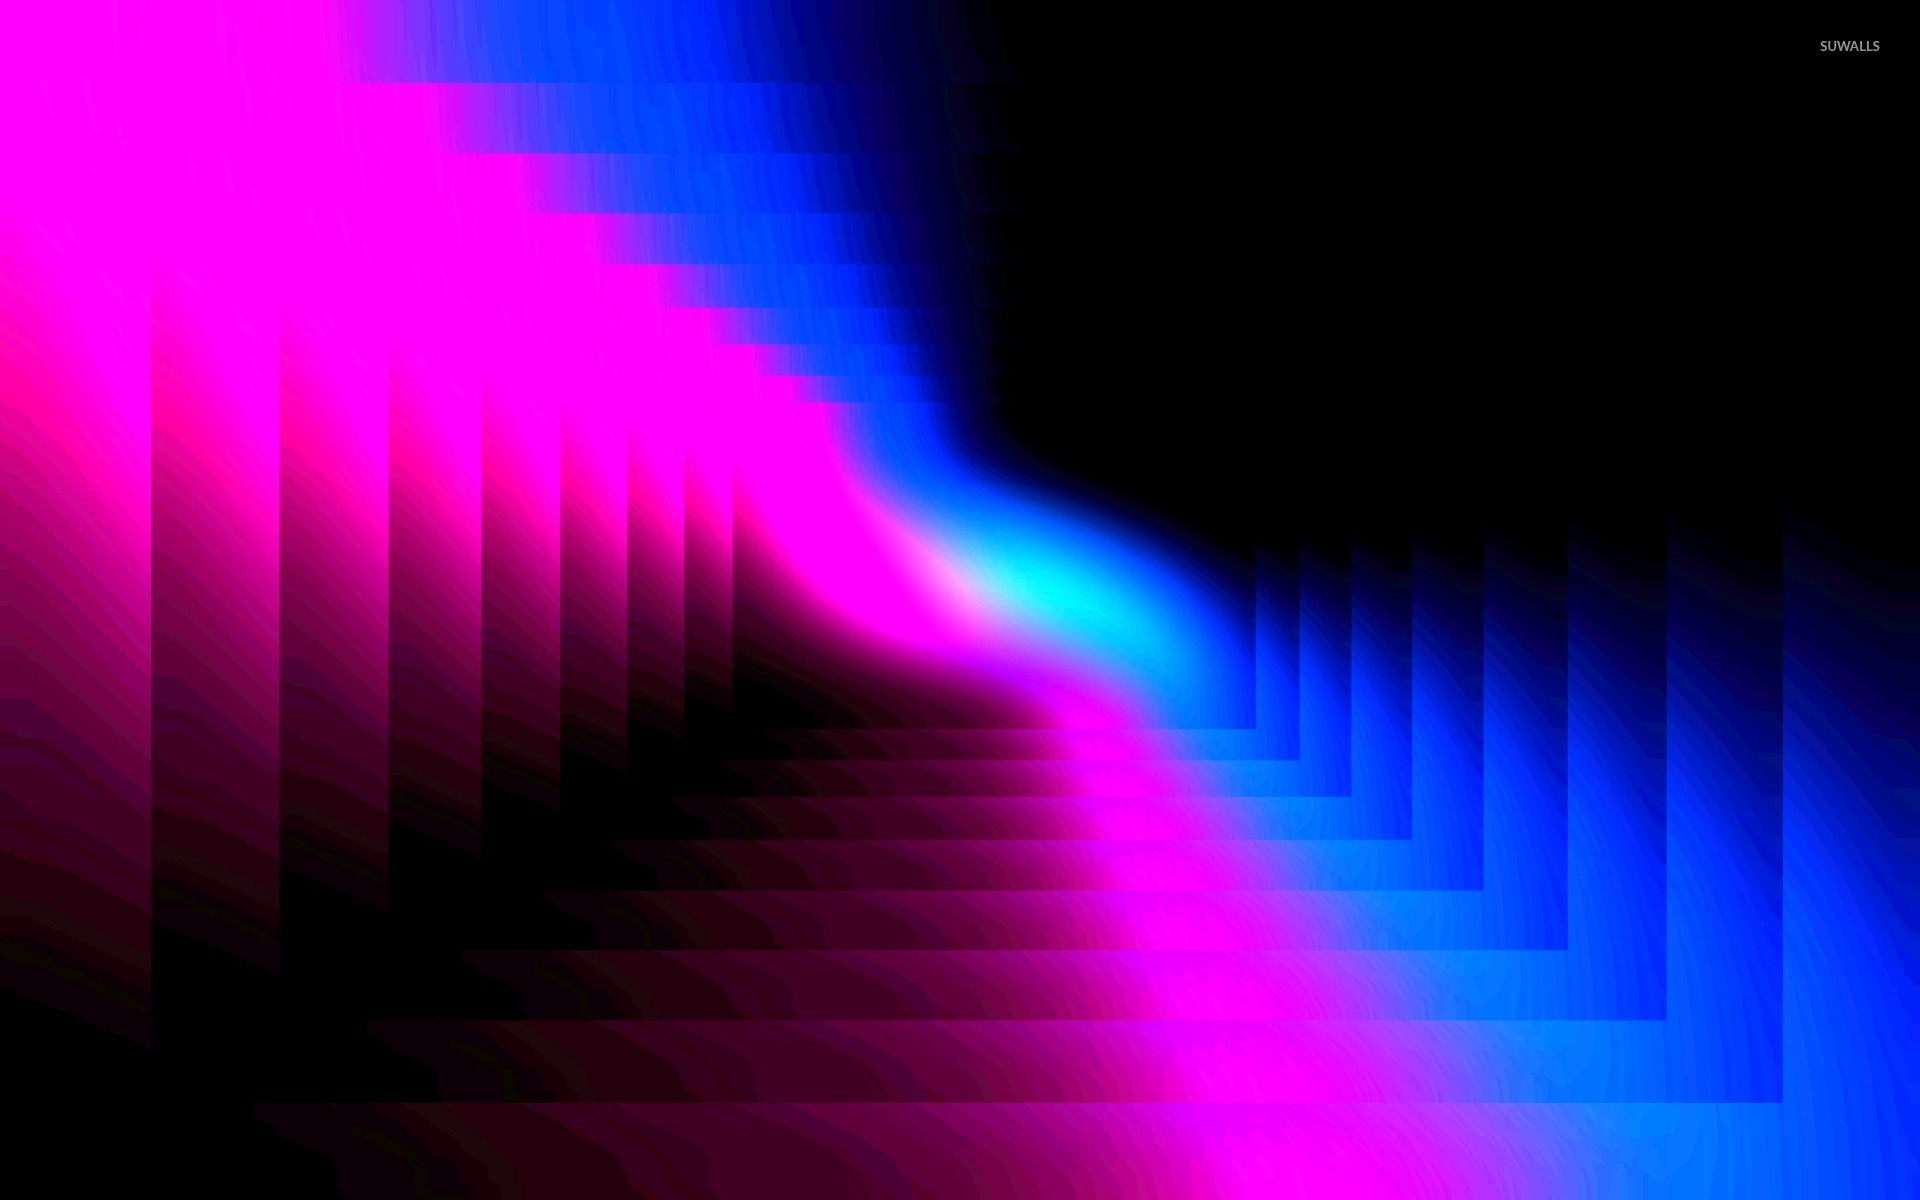 Pink and blue tunnel wallpaper - Abstract wallpapers - #26998